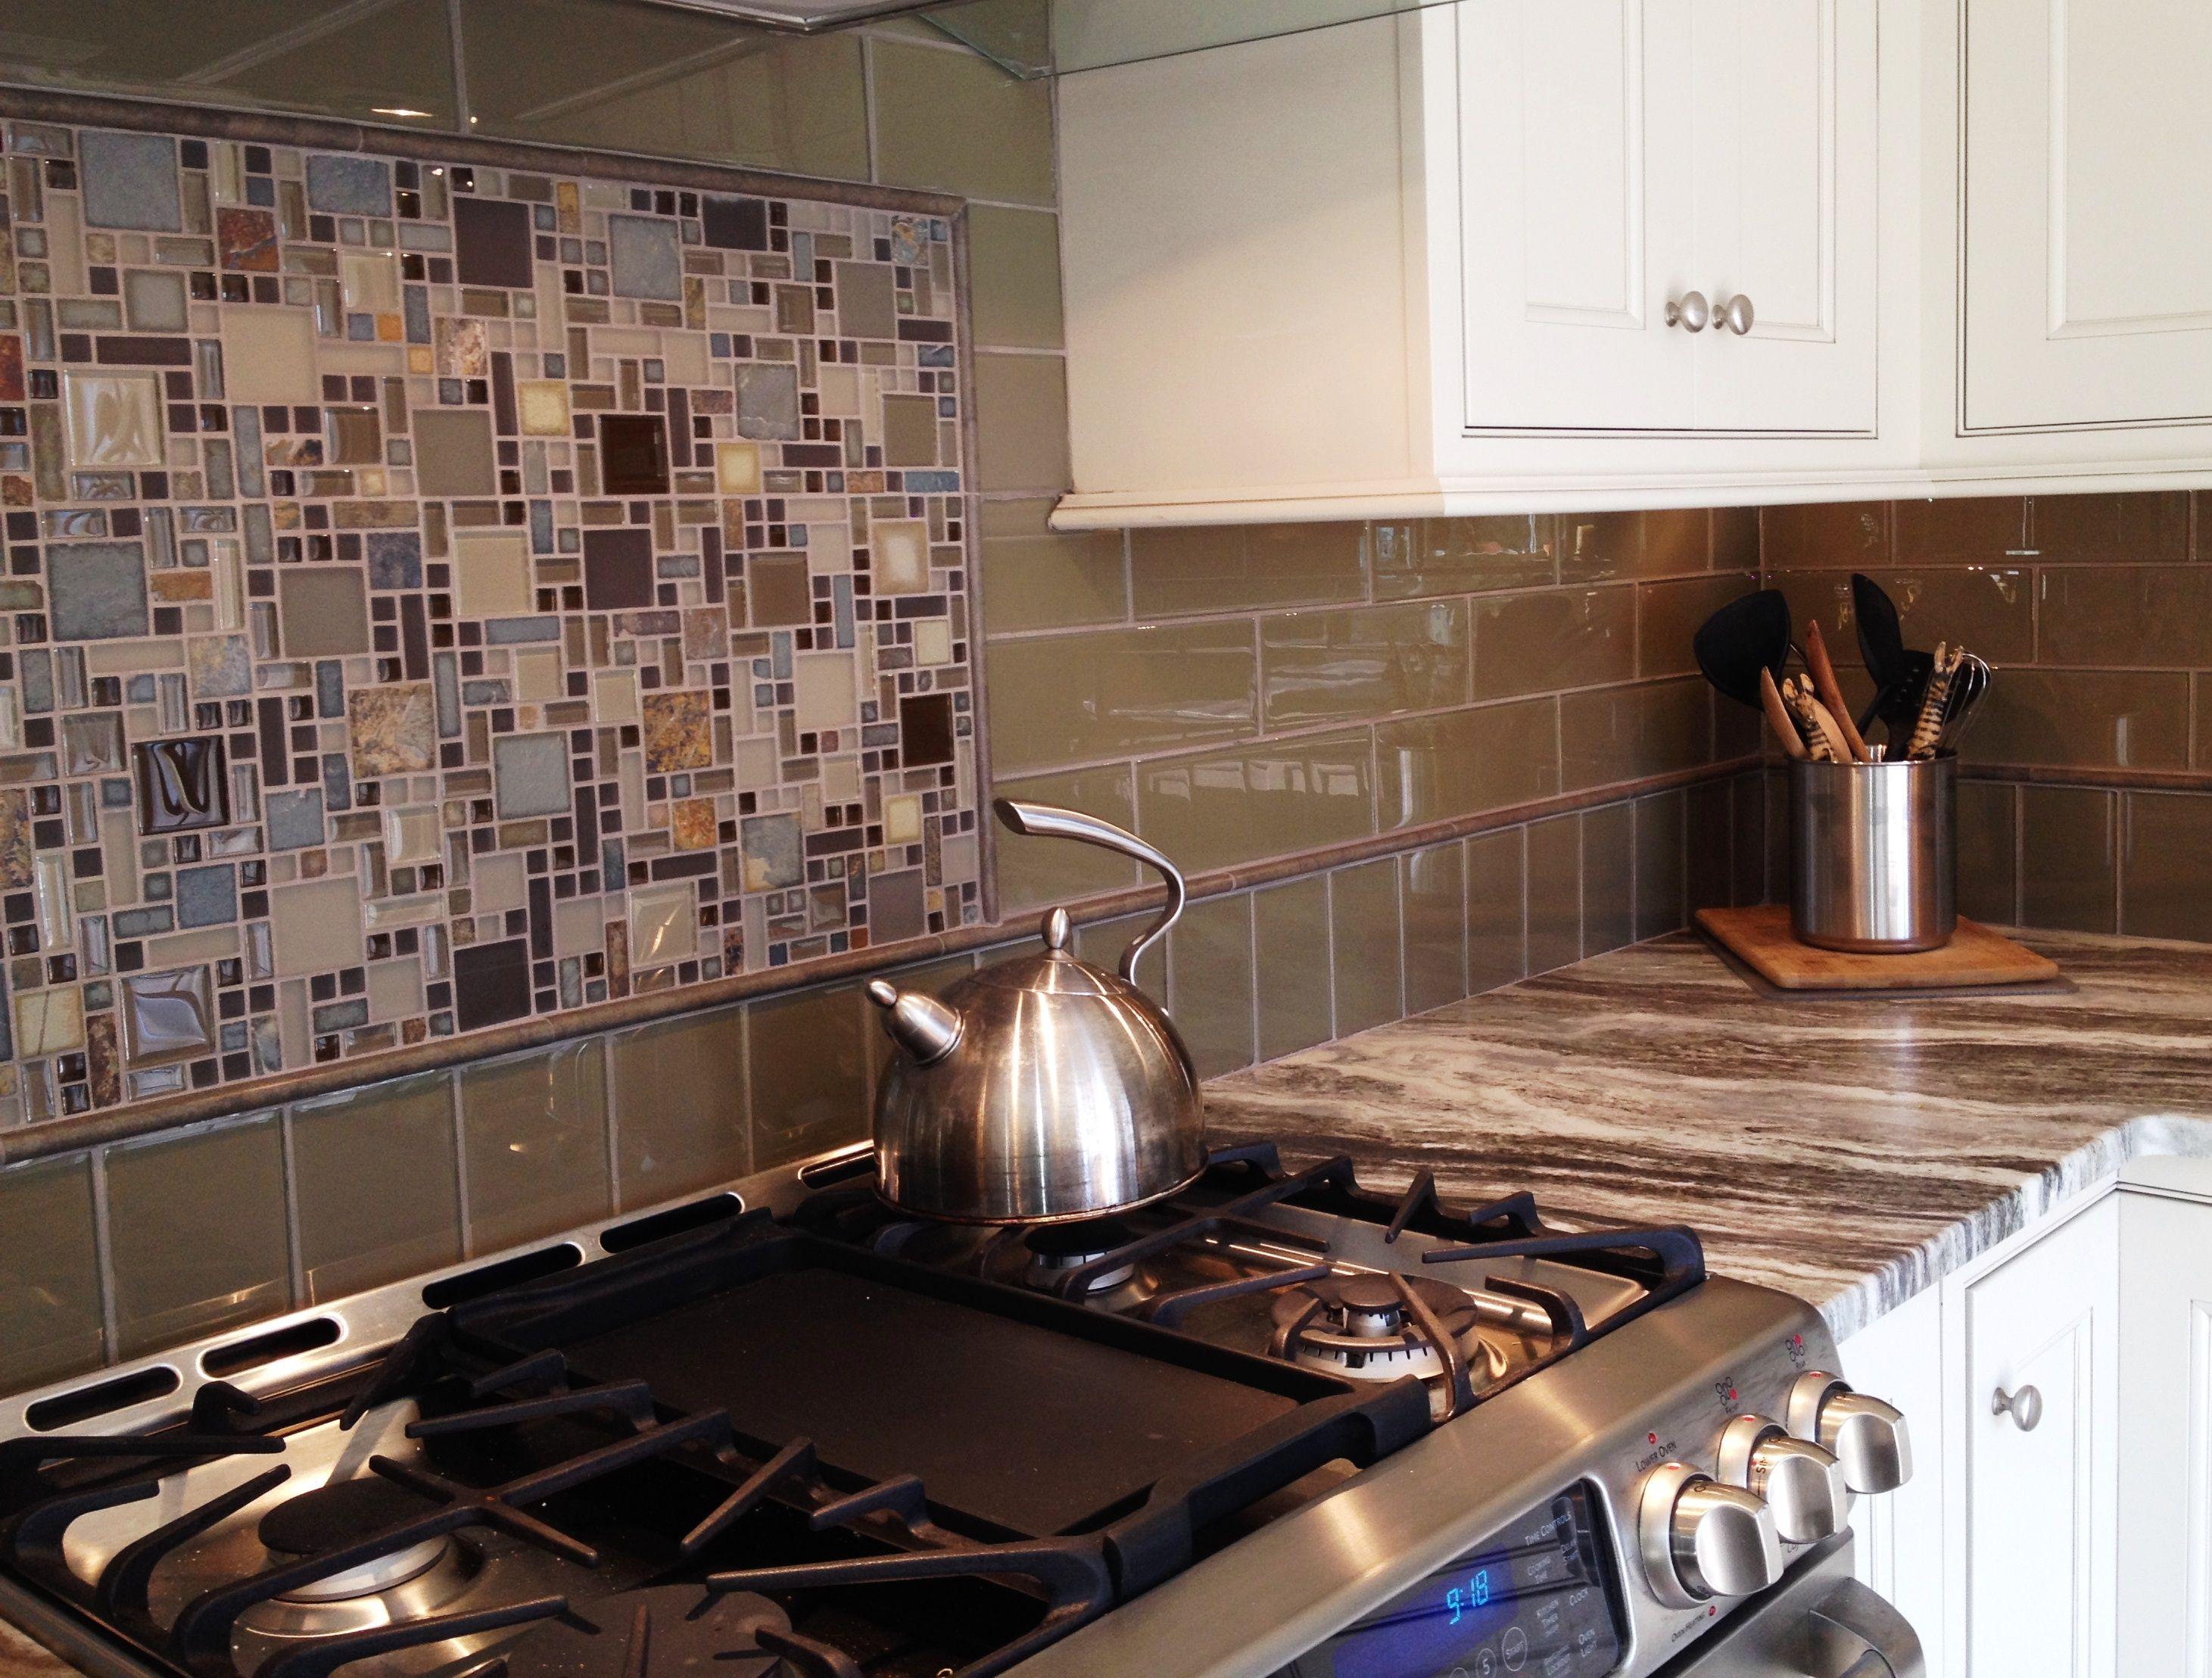 Glass tile backsplash with framed mosaic tile insert over the